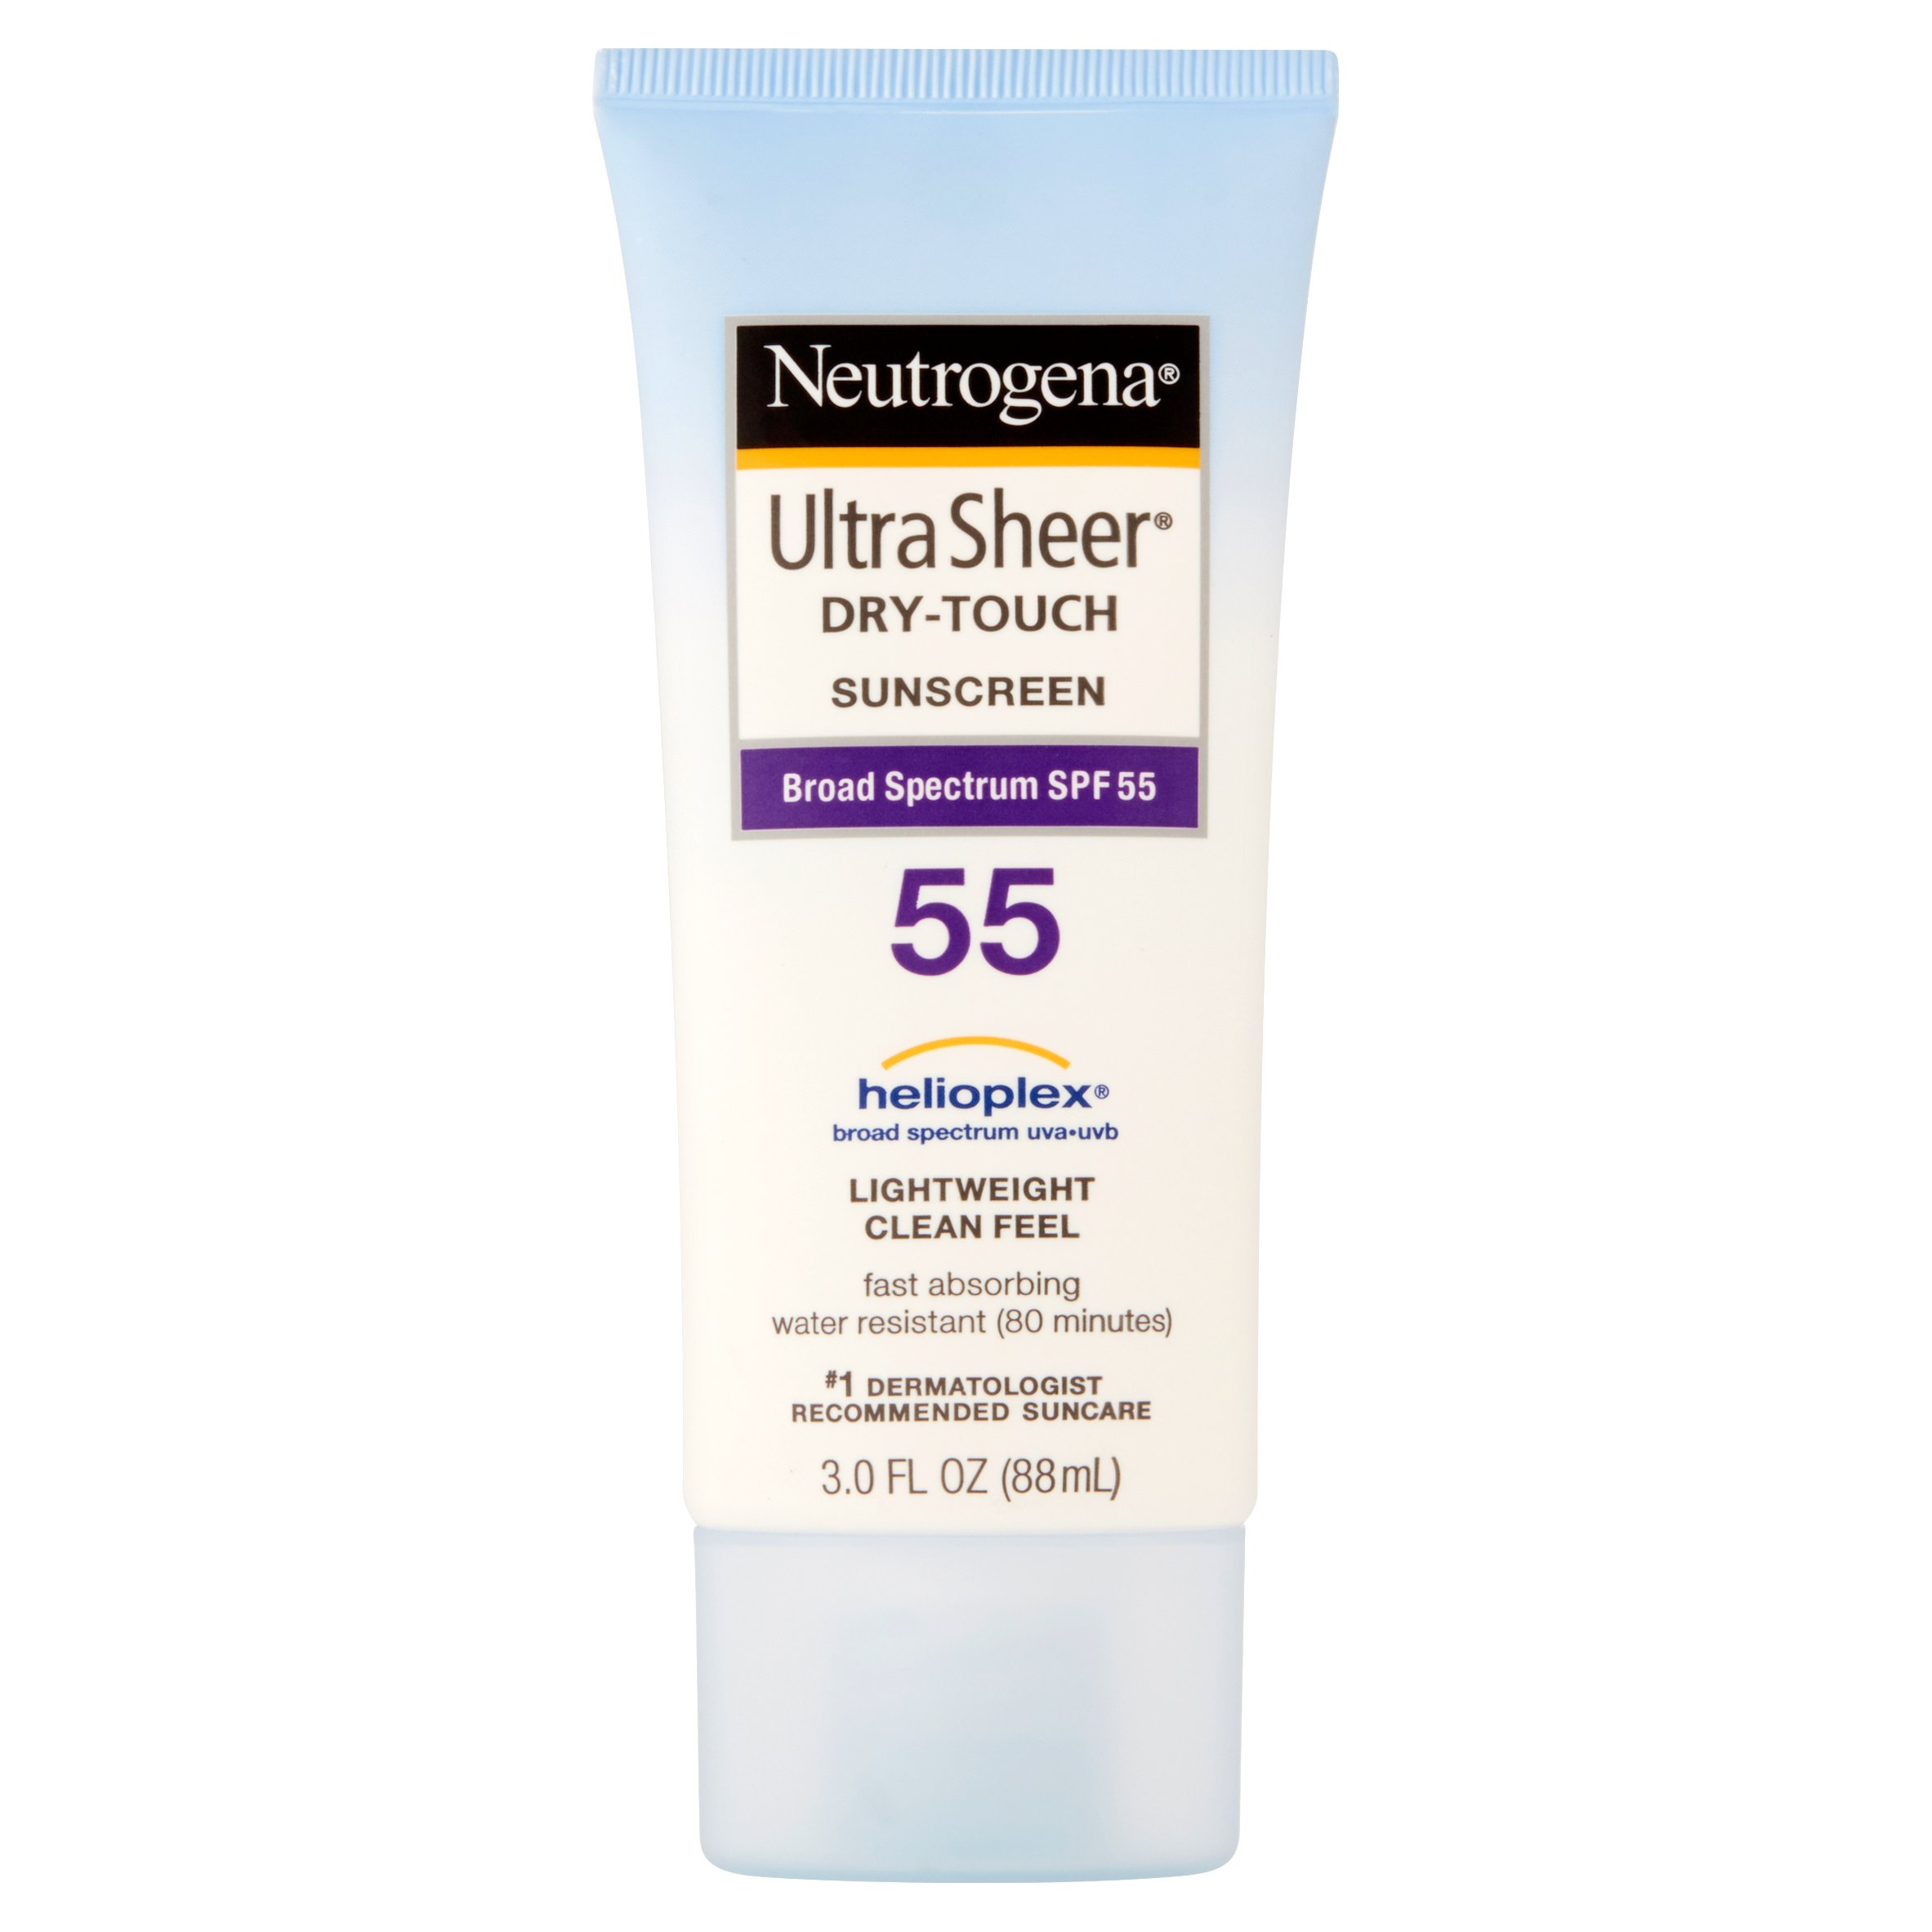 Neutrogena Ultra Sheer Broad Spectrum Sunscreen SPF 55